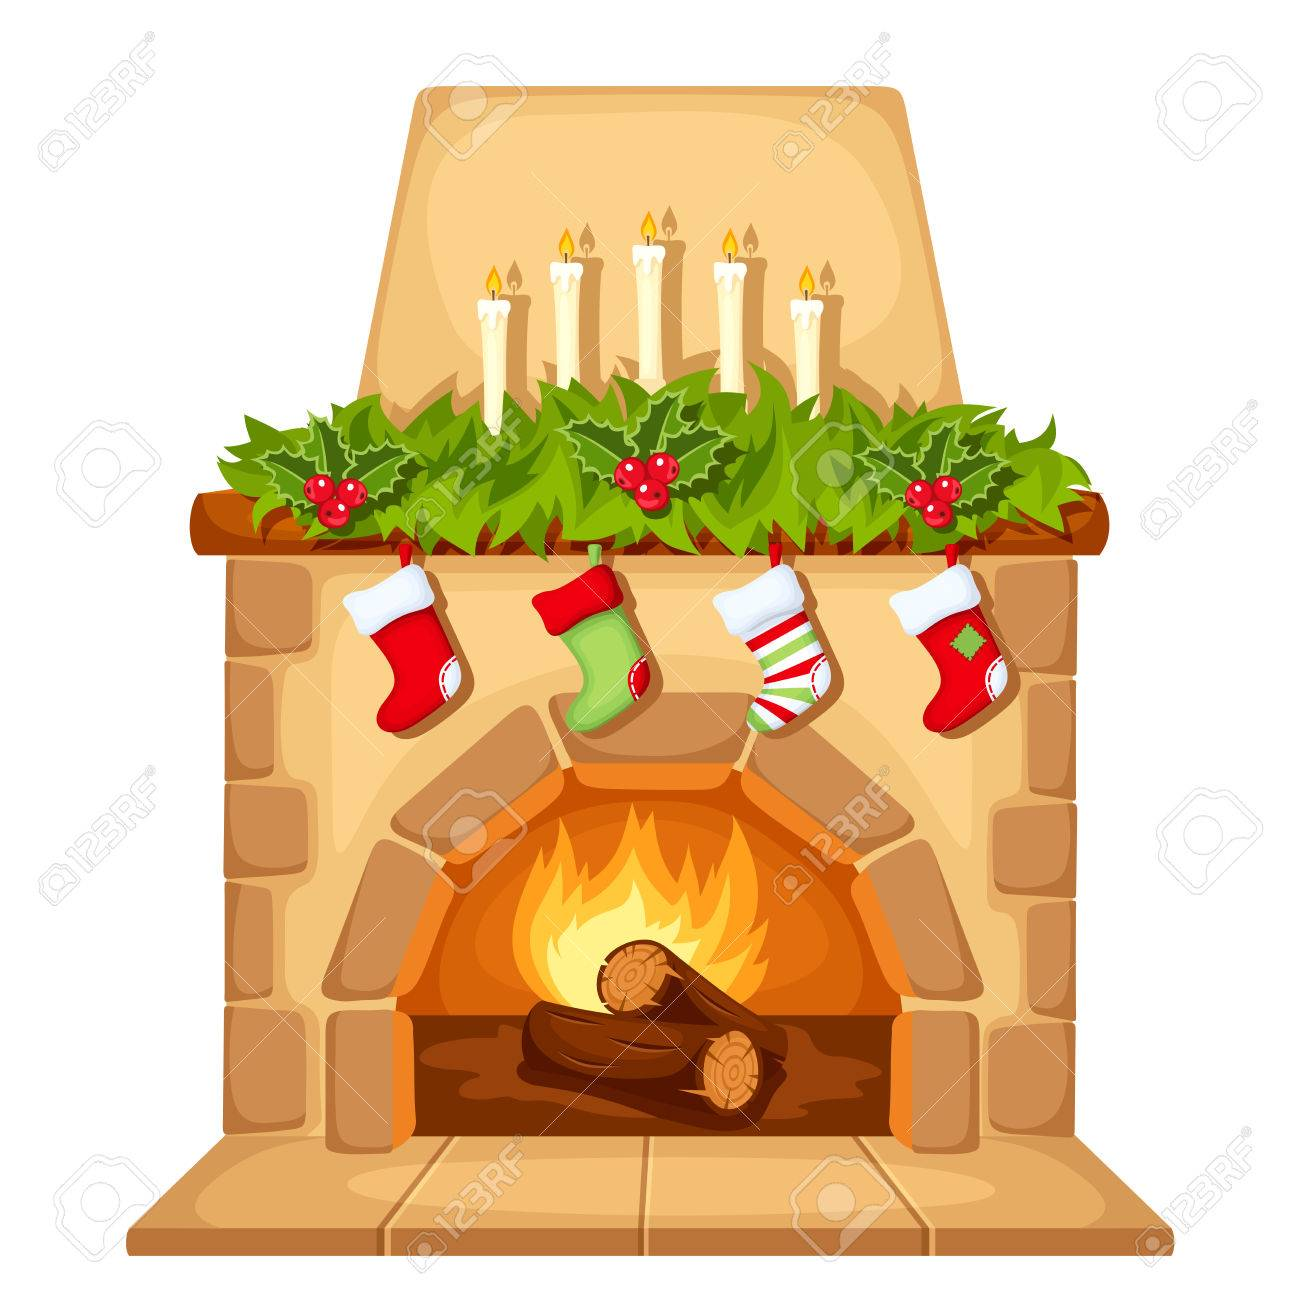 Vector illustration of Christmas fireplace isolated on a white background. - 67841750